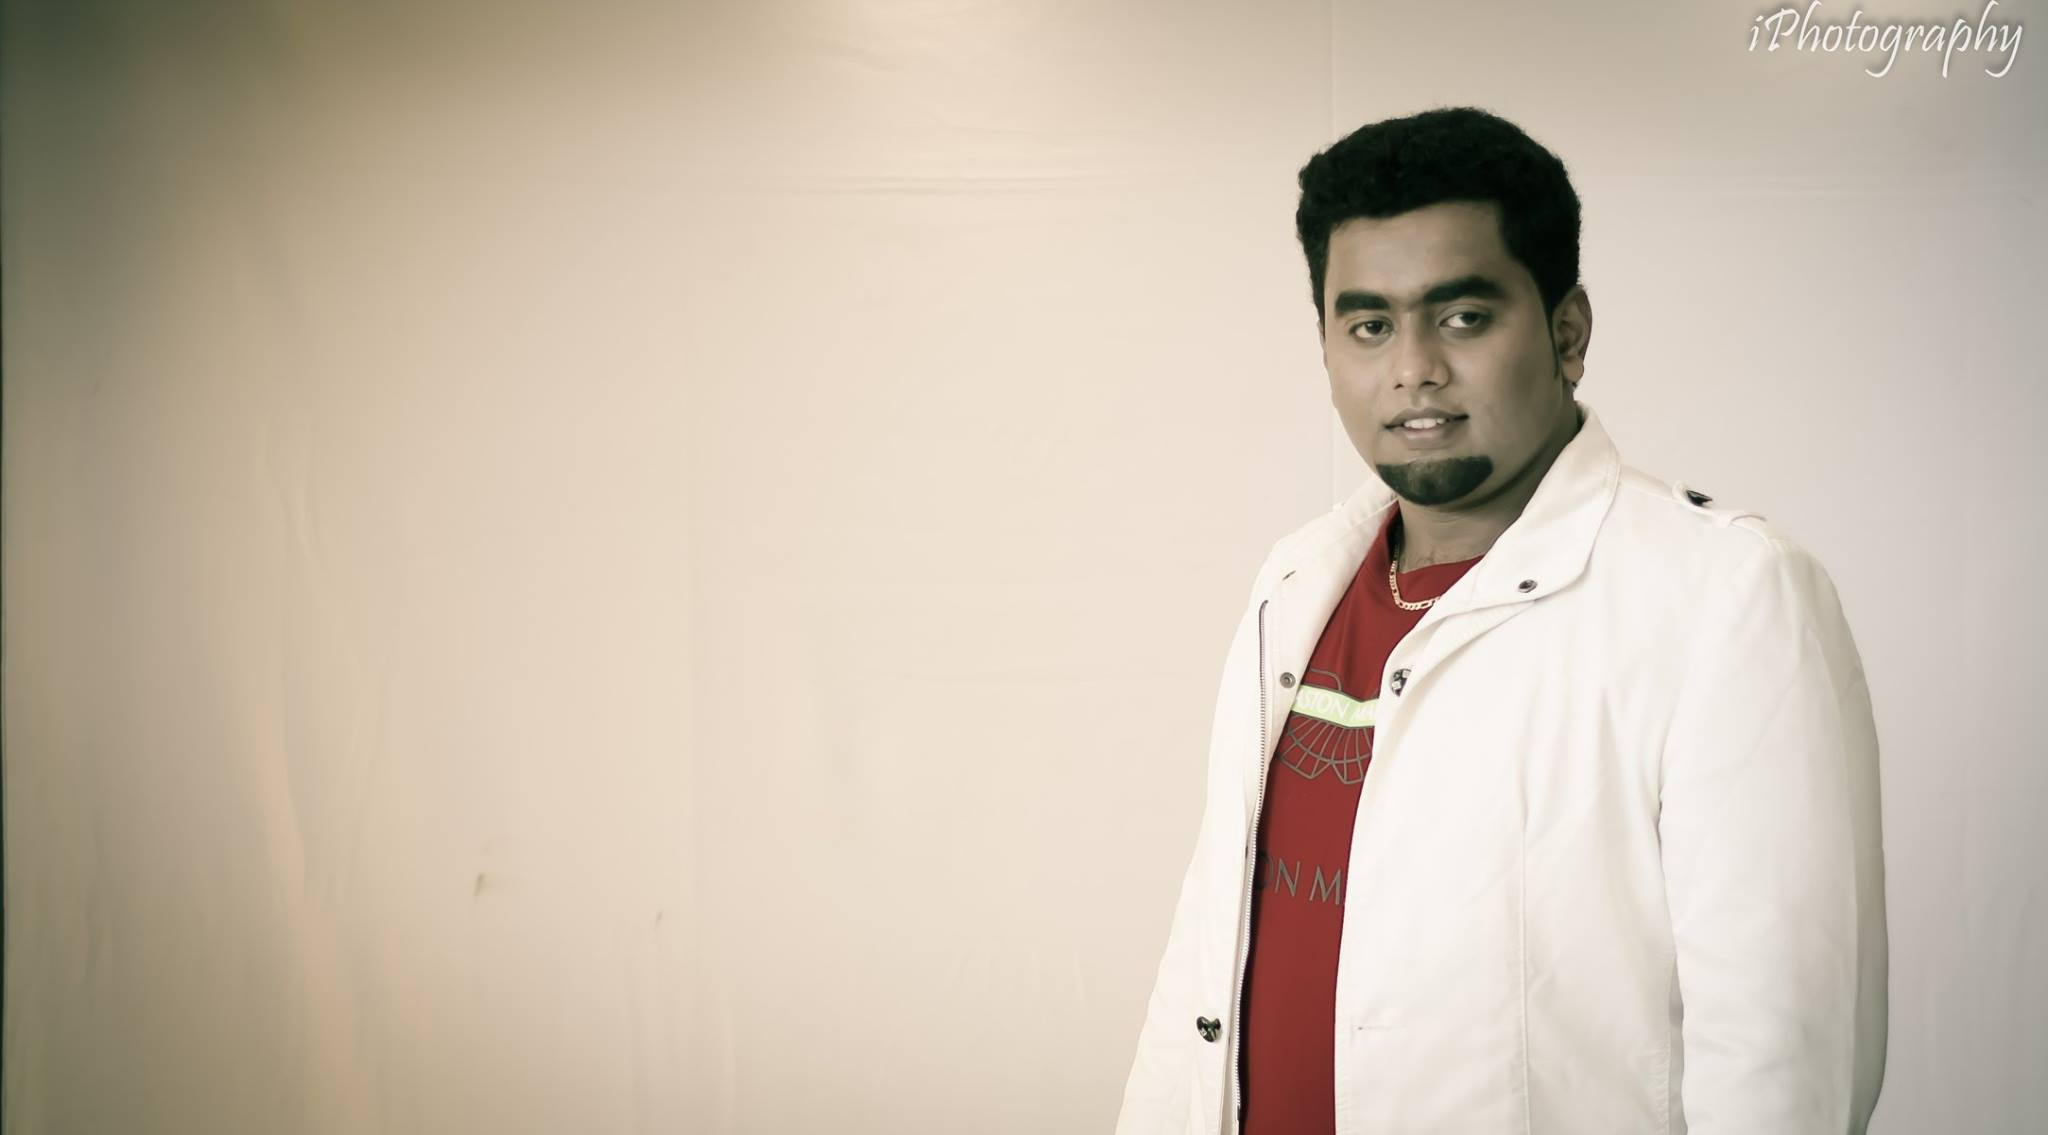 Red tshirt with white coat